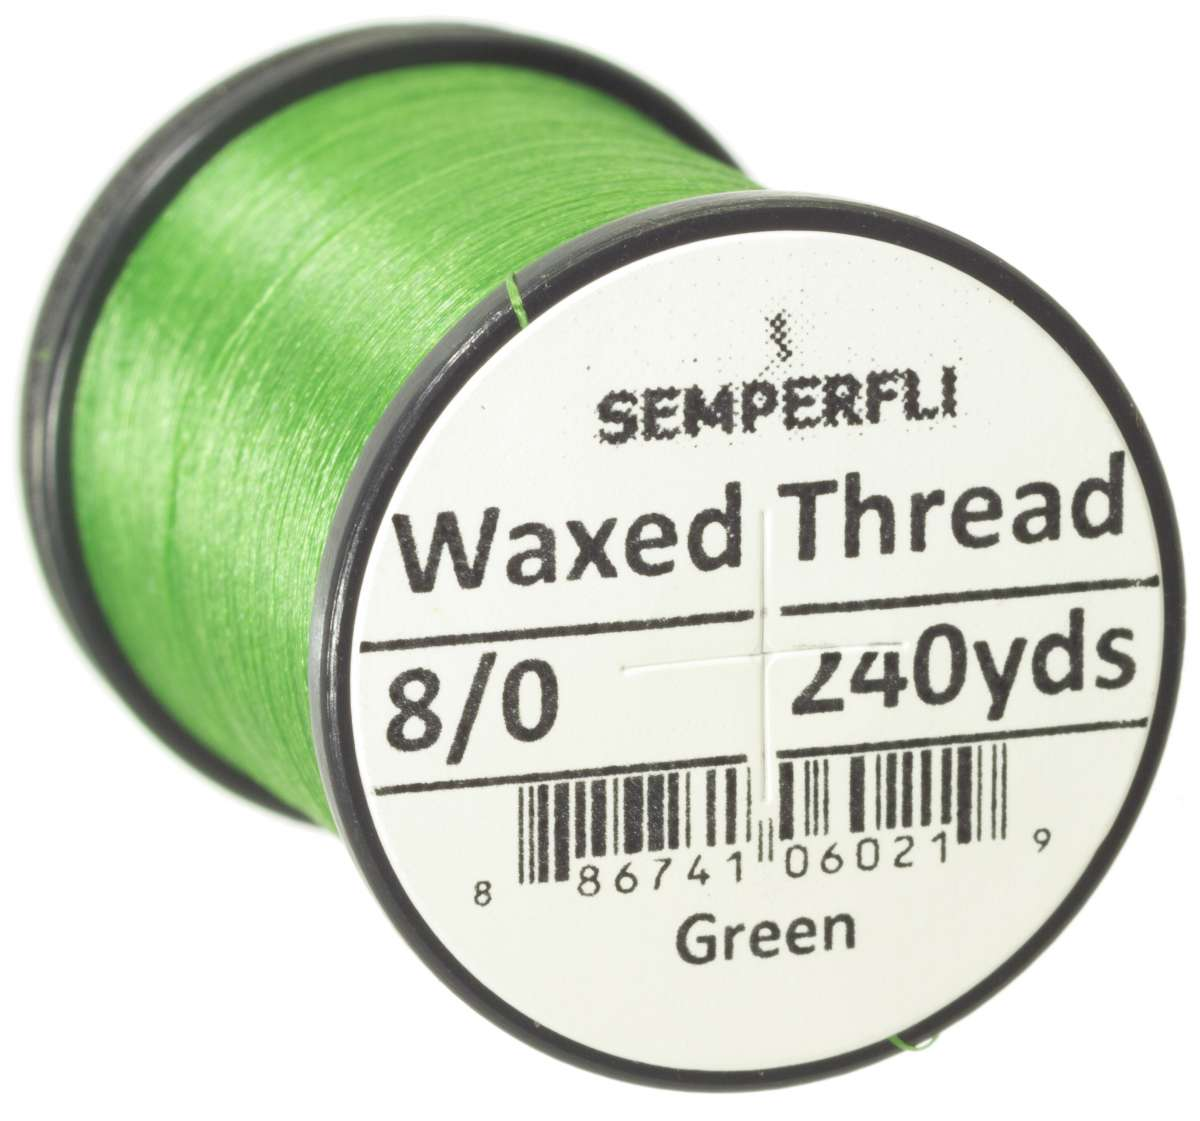 8/0 Classic Waxed Thread Green Sem-0400-1604